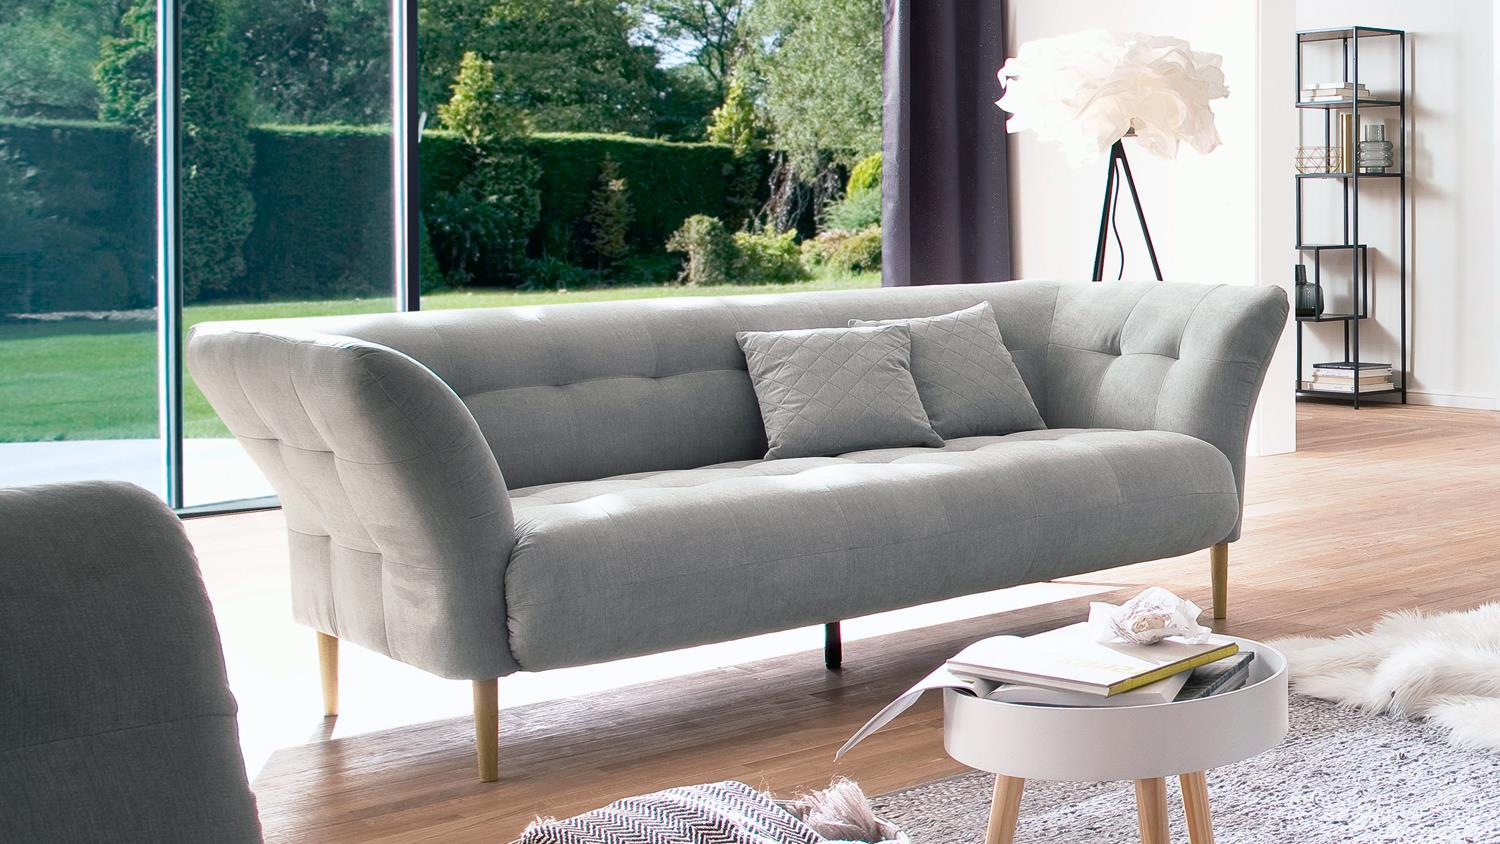 2 5 sitzer big apple sofa couch polstersofa stoff silber. Black Bedroom Furniture Sets. Home Design Ideas